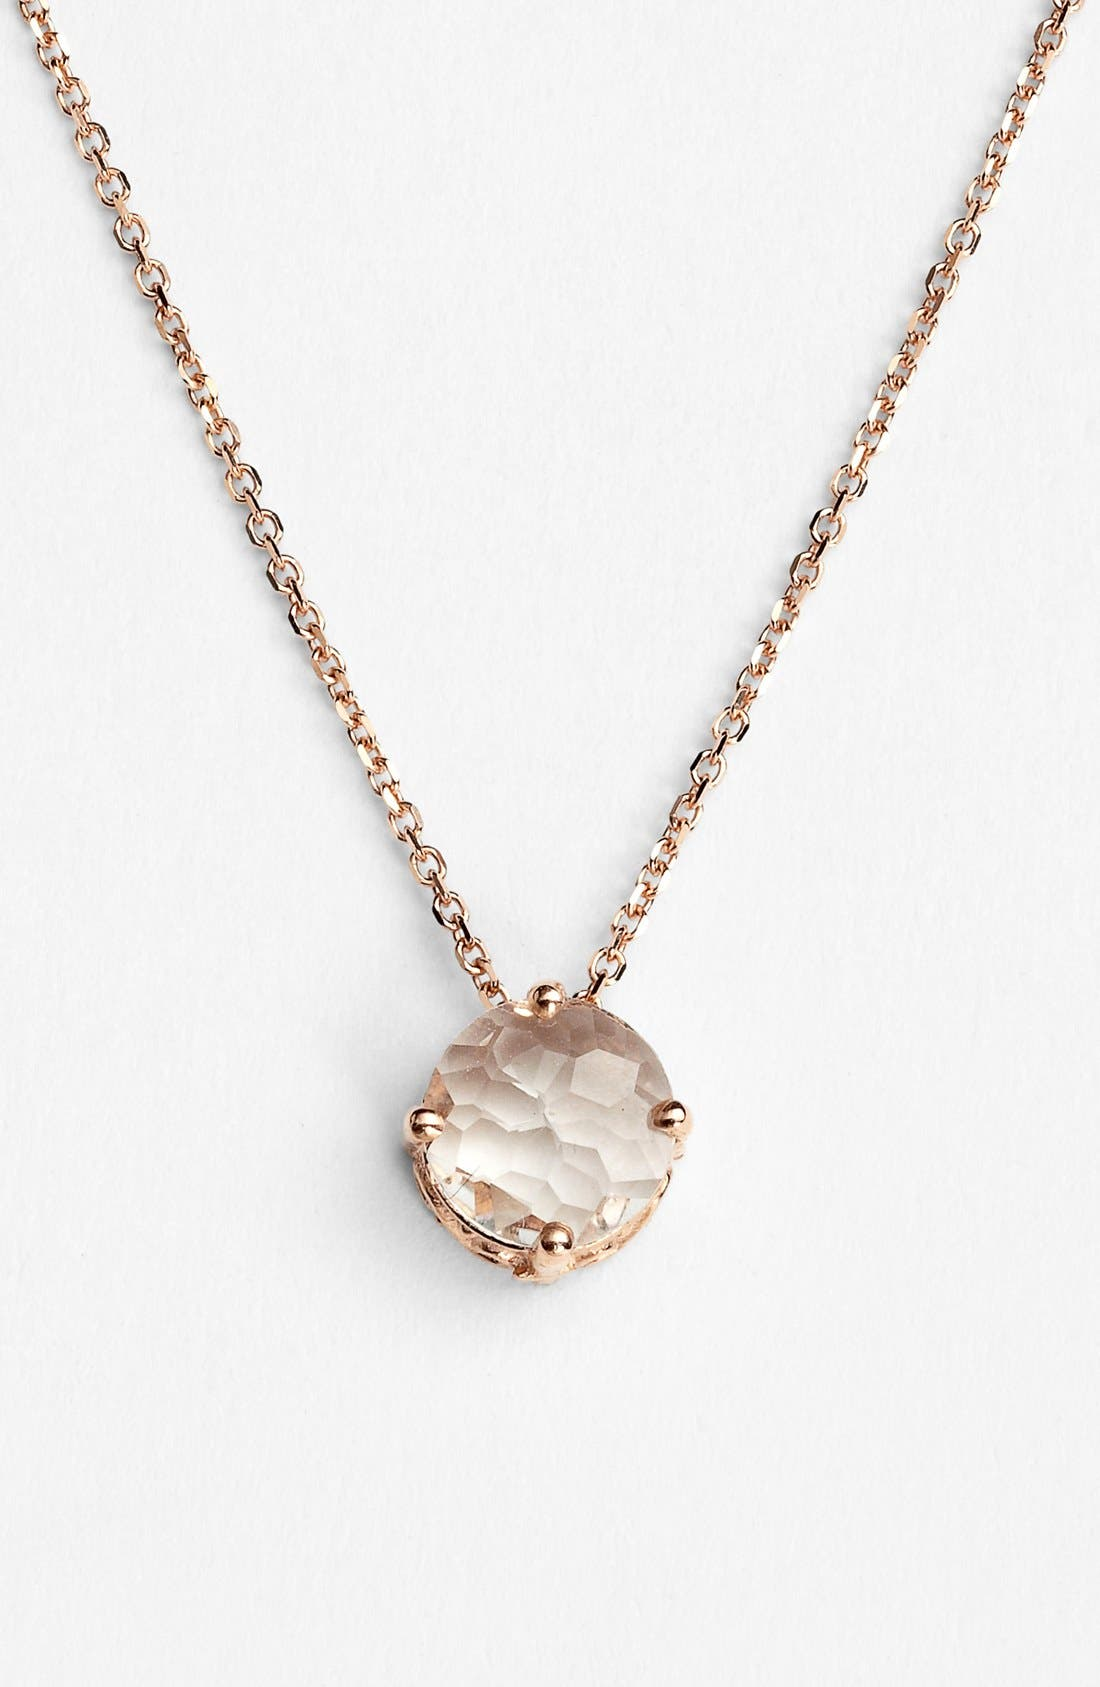 Main Image - KALAN by Suzanne Kalan Round Stone Drop Necklace